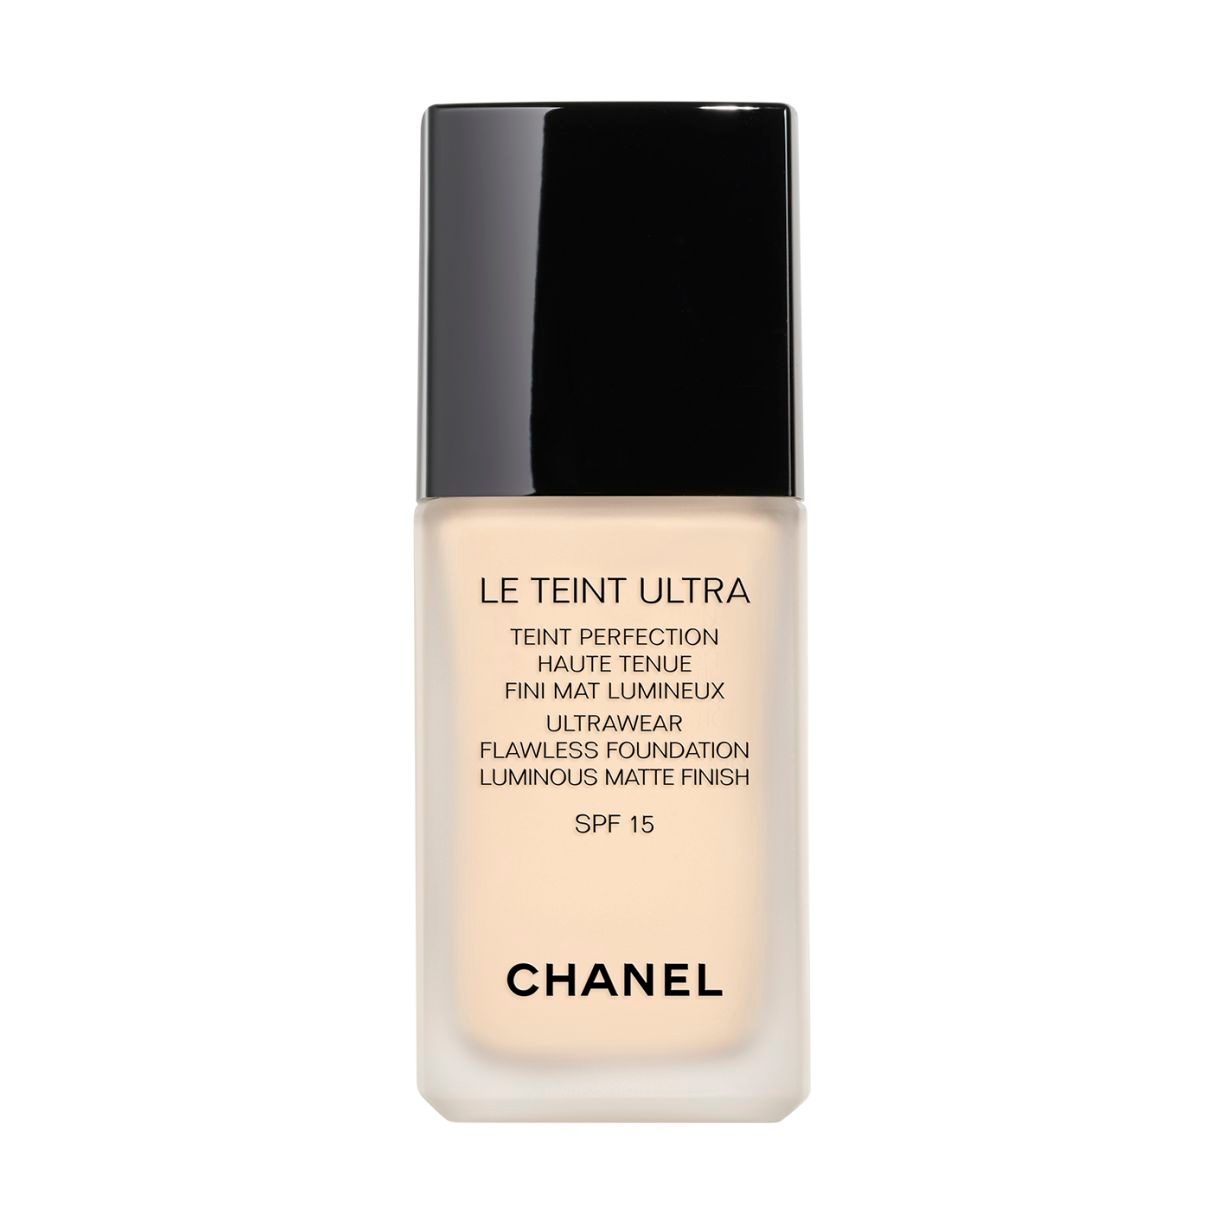 LE TEINT ULTRA TEINT PERFECTION HAUTE TENUE FINI MAT LUMINEUX. SPF 15 10 BEIGE 30ML